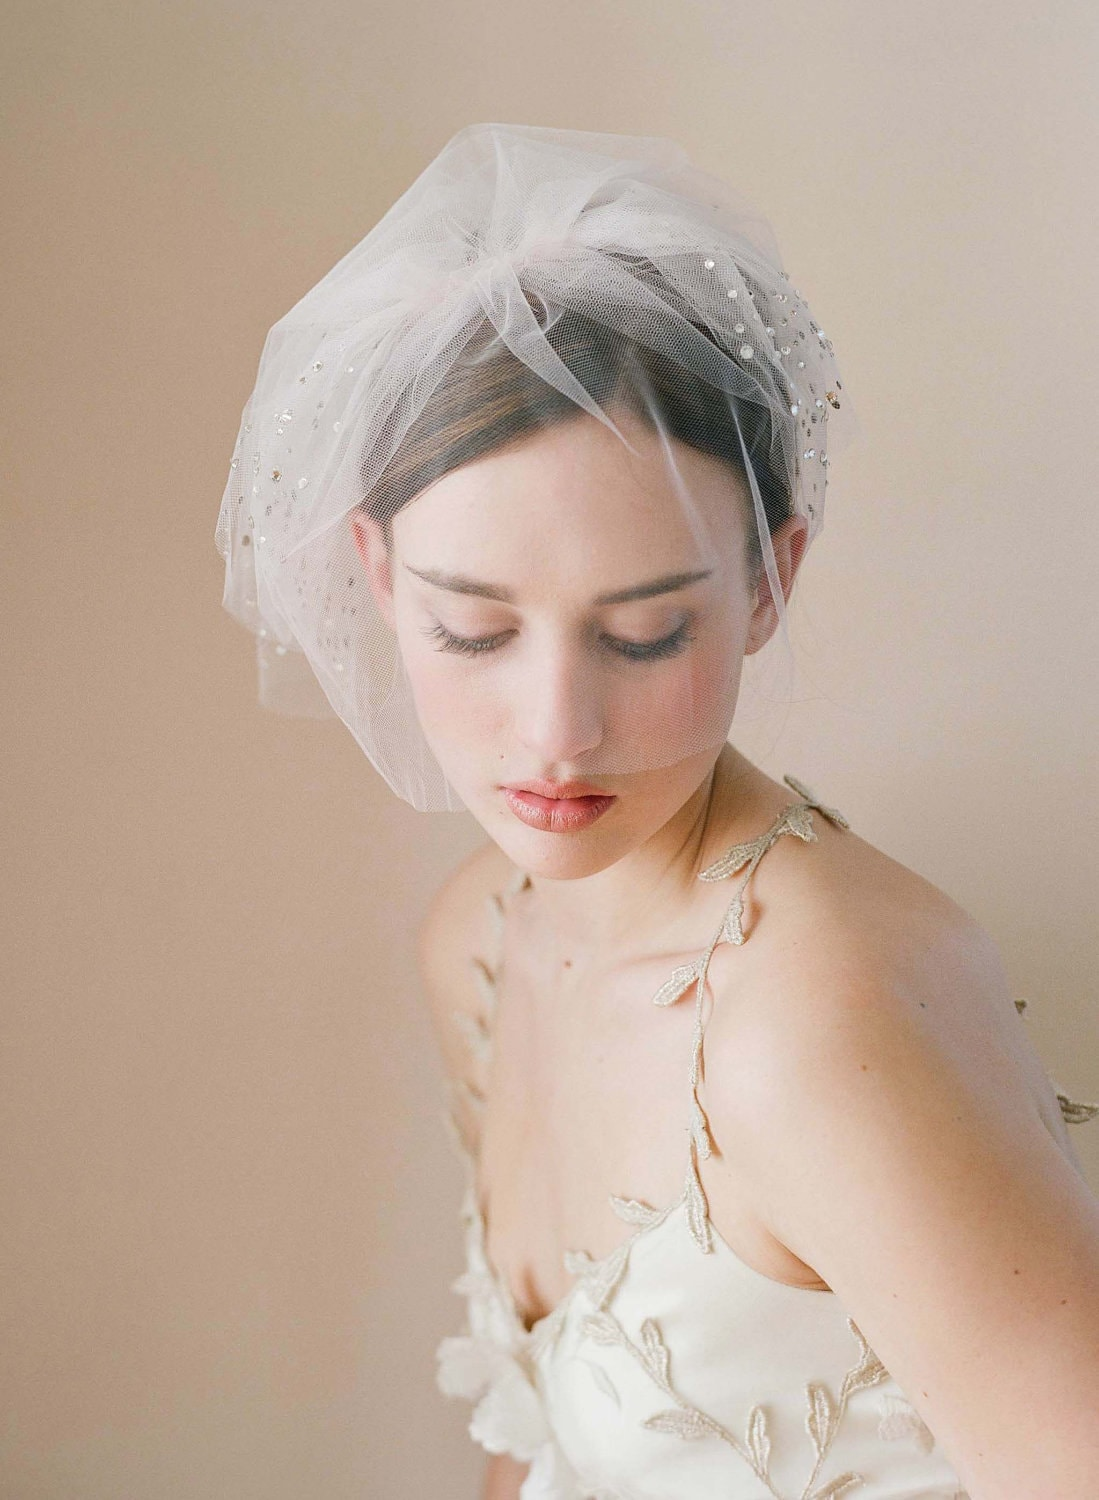 Bridal tulle blusher veil - Triple layer rhinestone adorned tulle veil with blusher - Style 216 - Made to Order